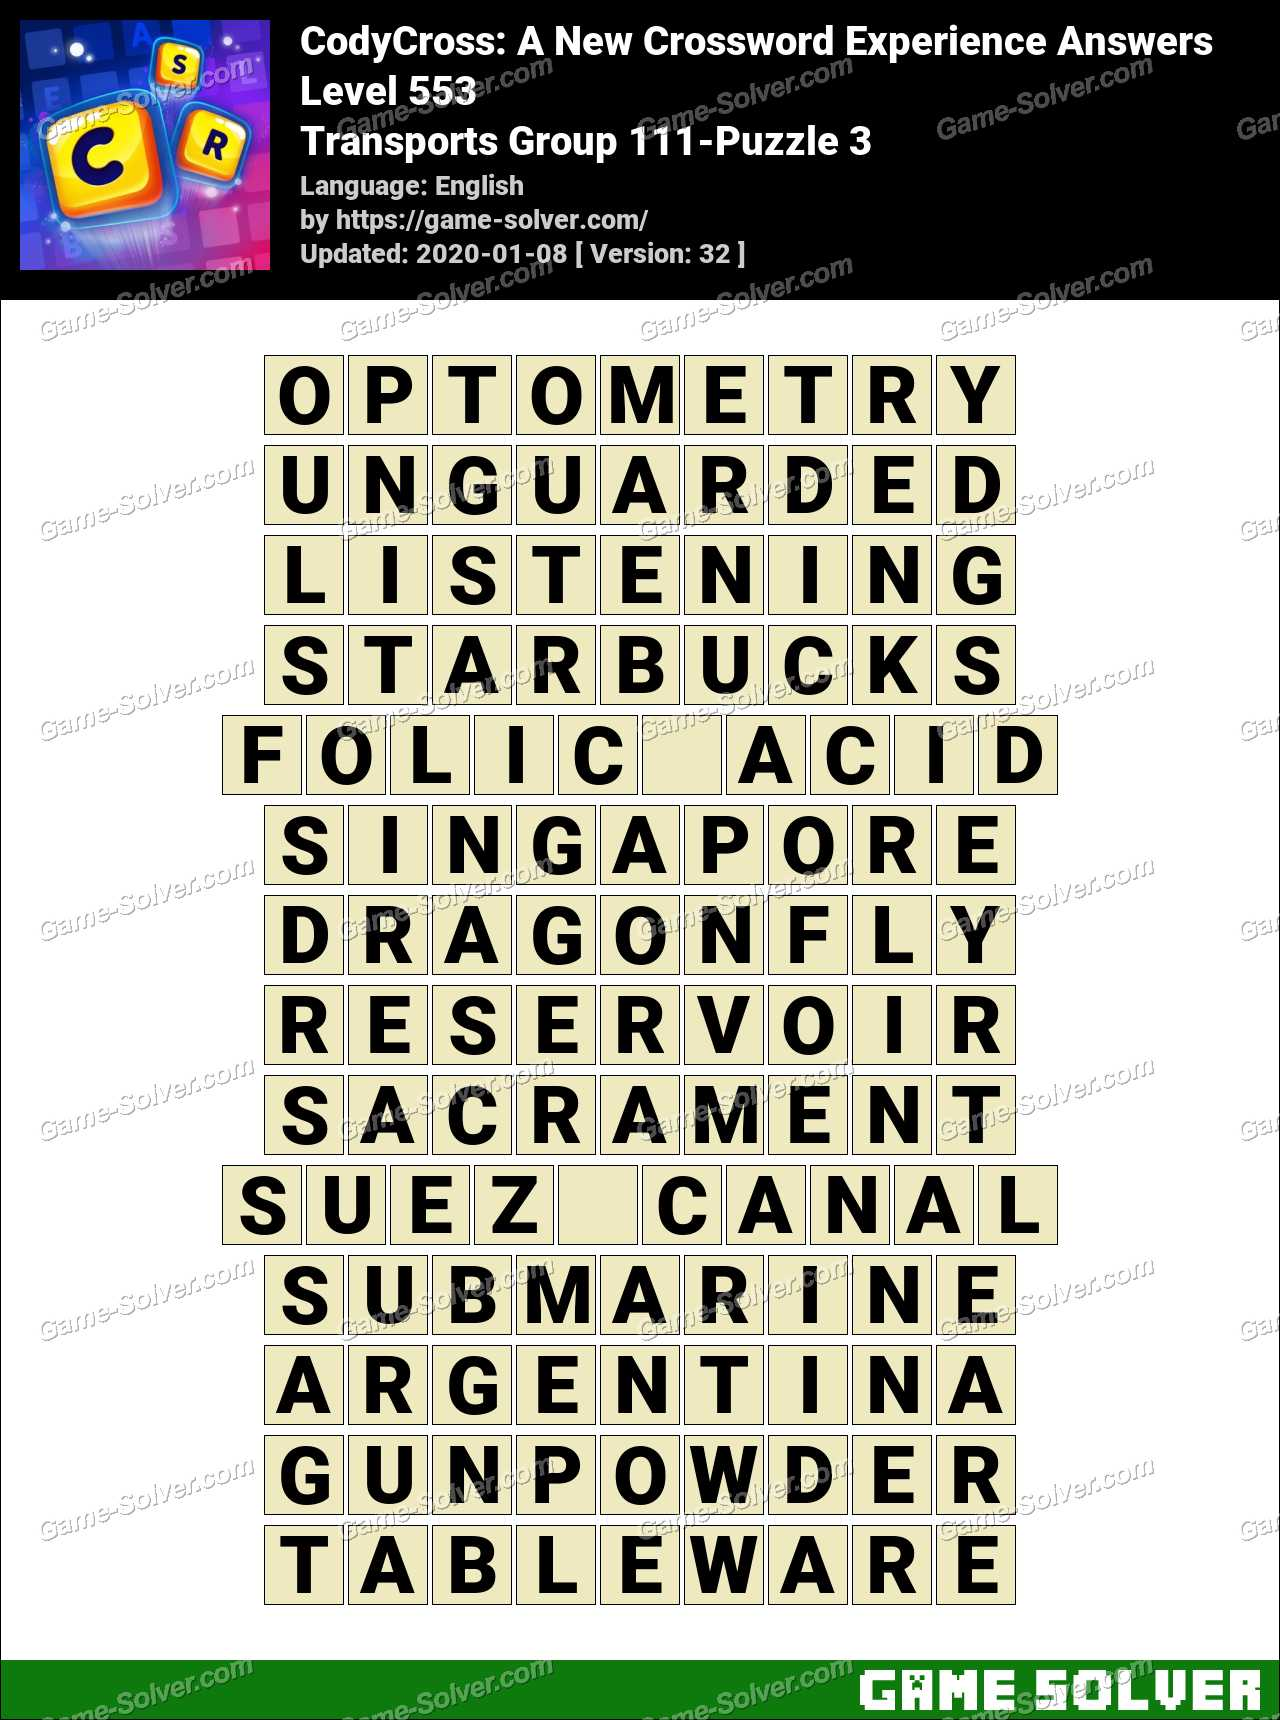 CodyCross Transports Group 111-Puzzle 3 Answers